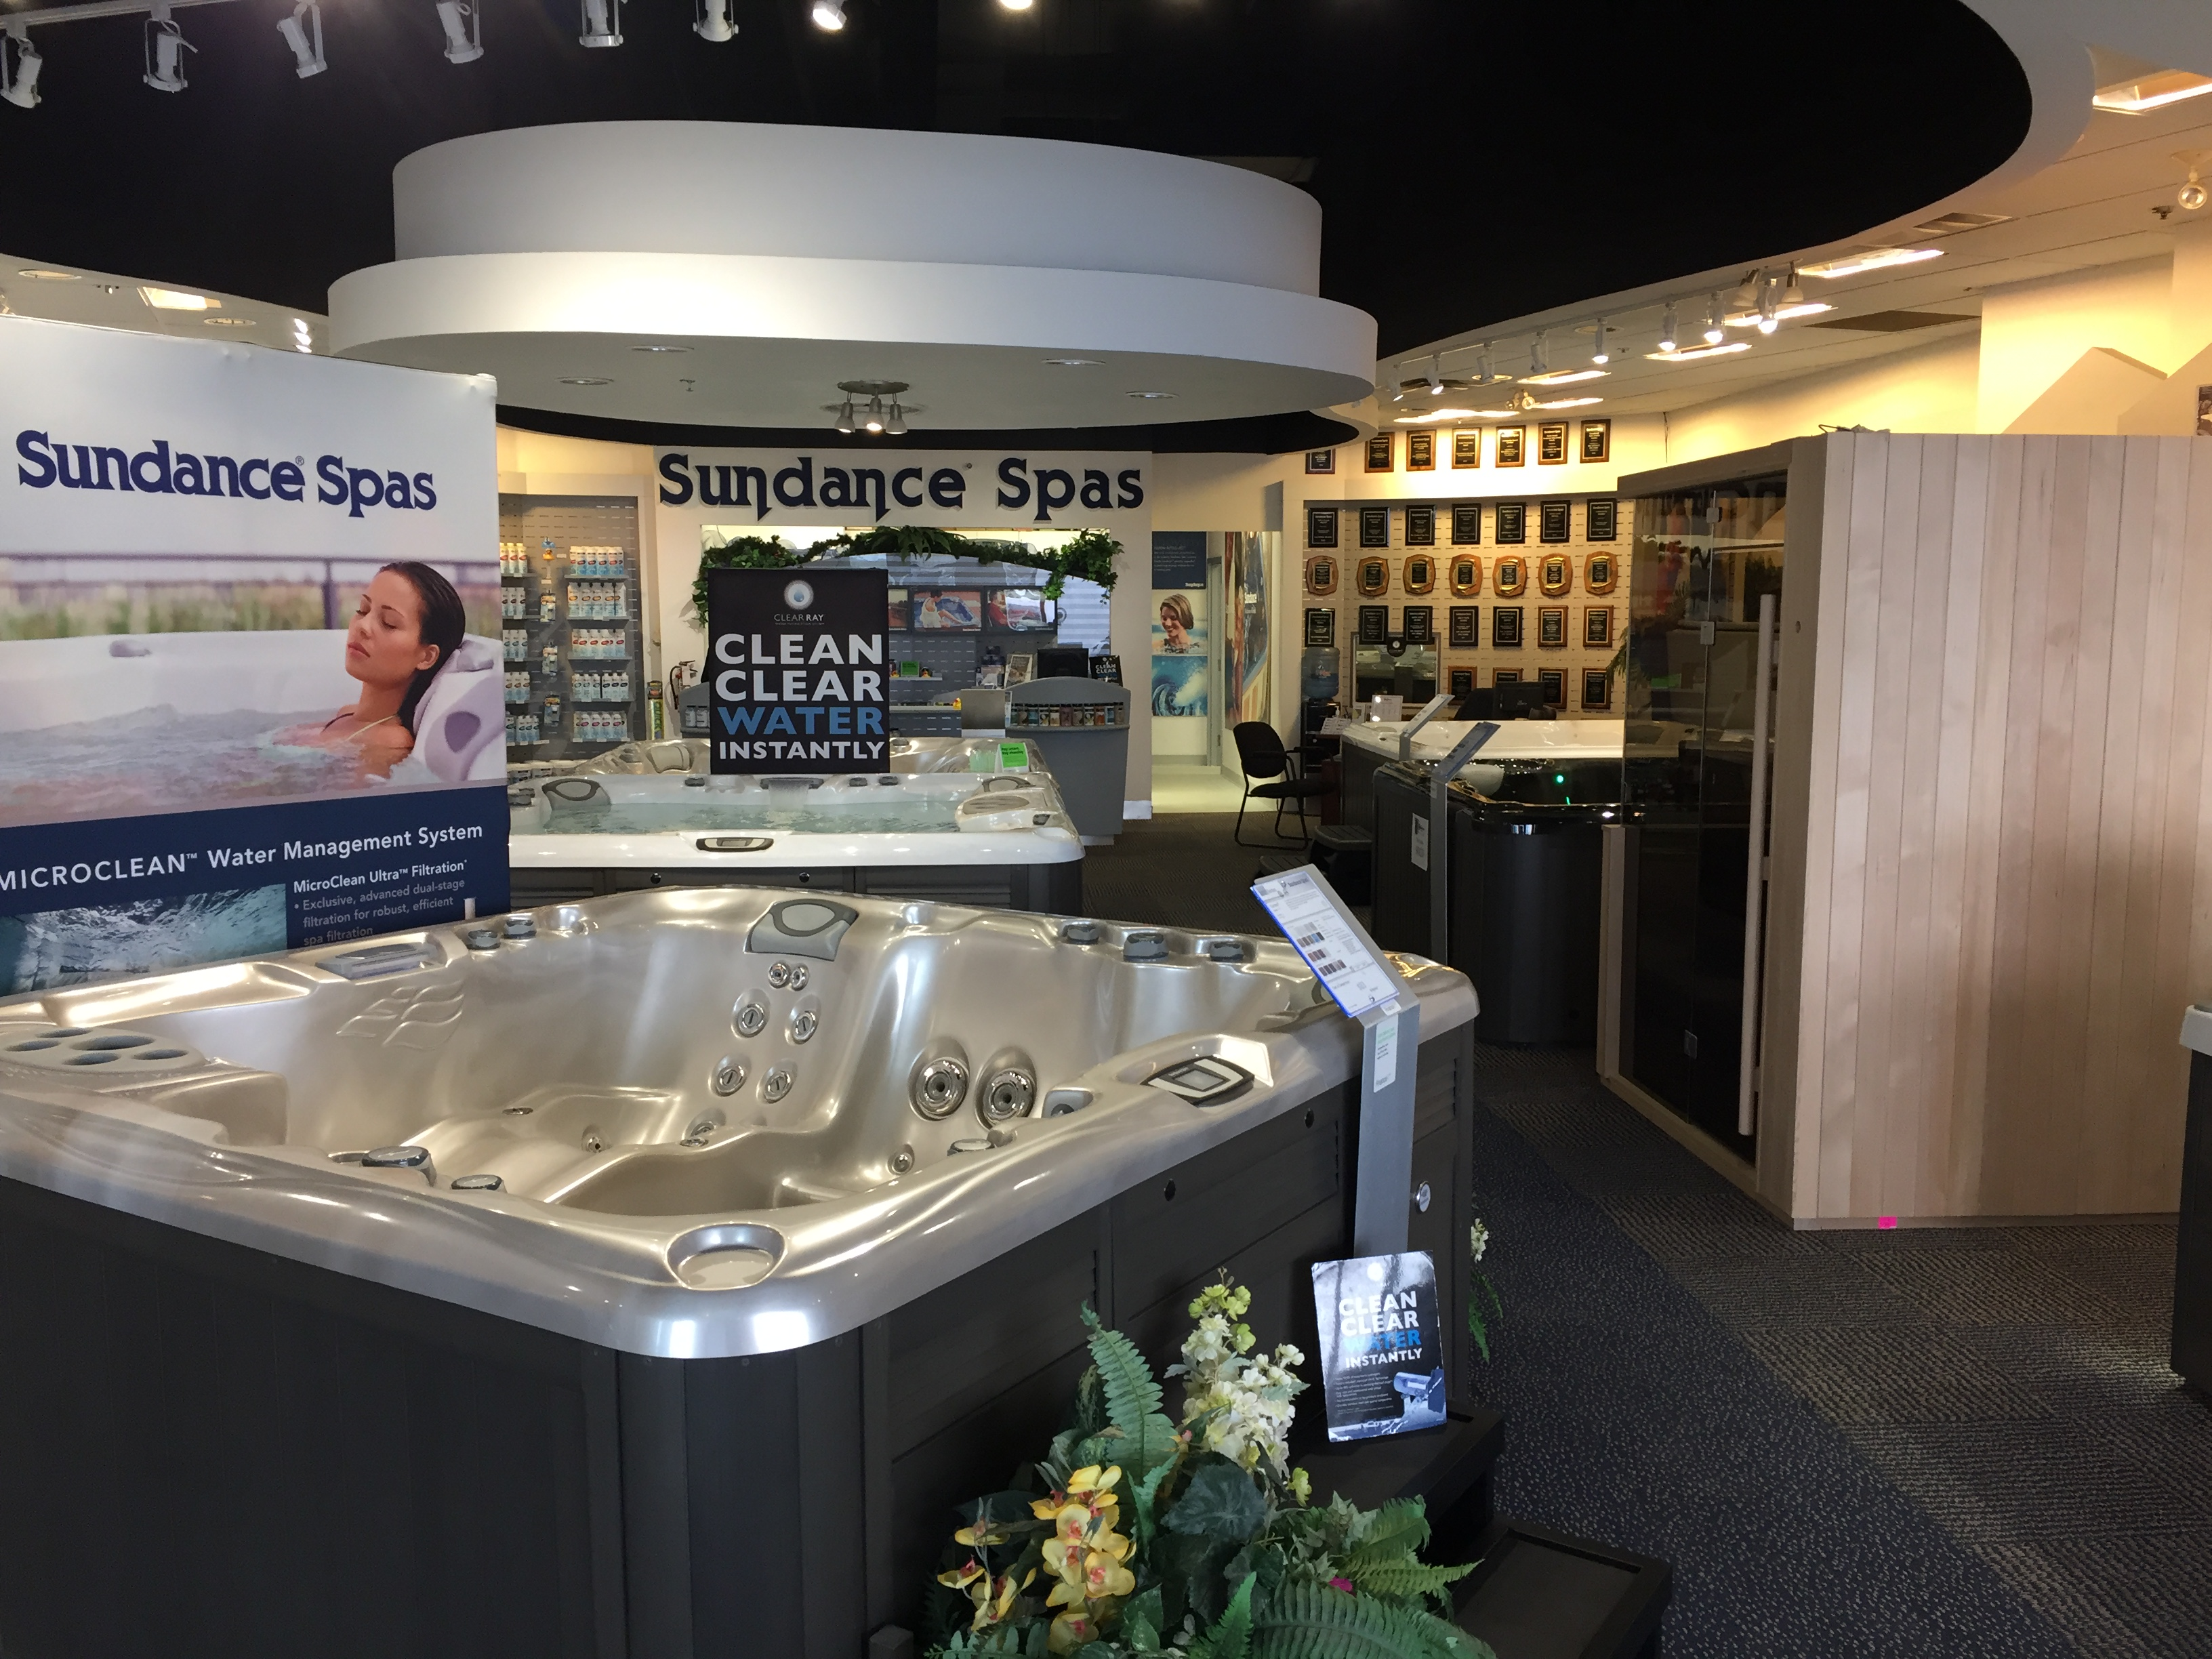 Outdoor Whirlpool Cheap How Much Does A Hot Tub Cost Blog The Sundance Spa Store